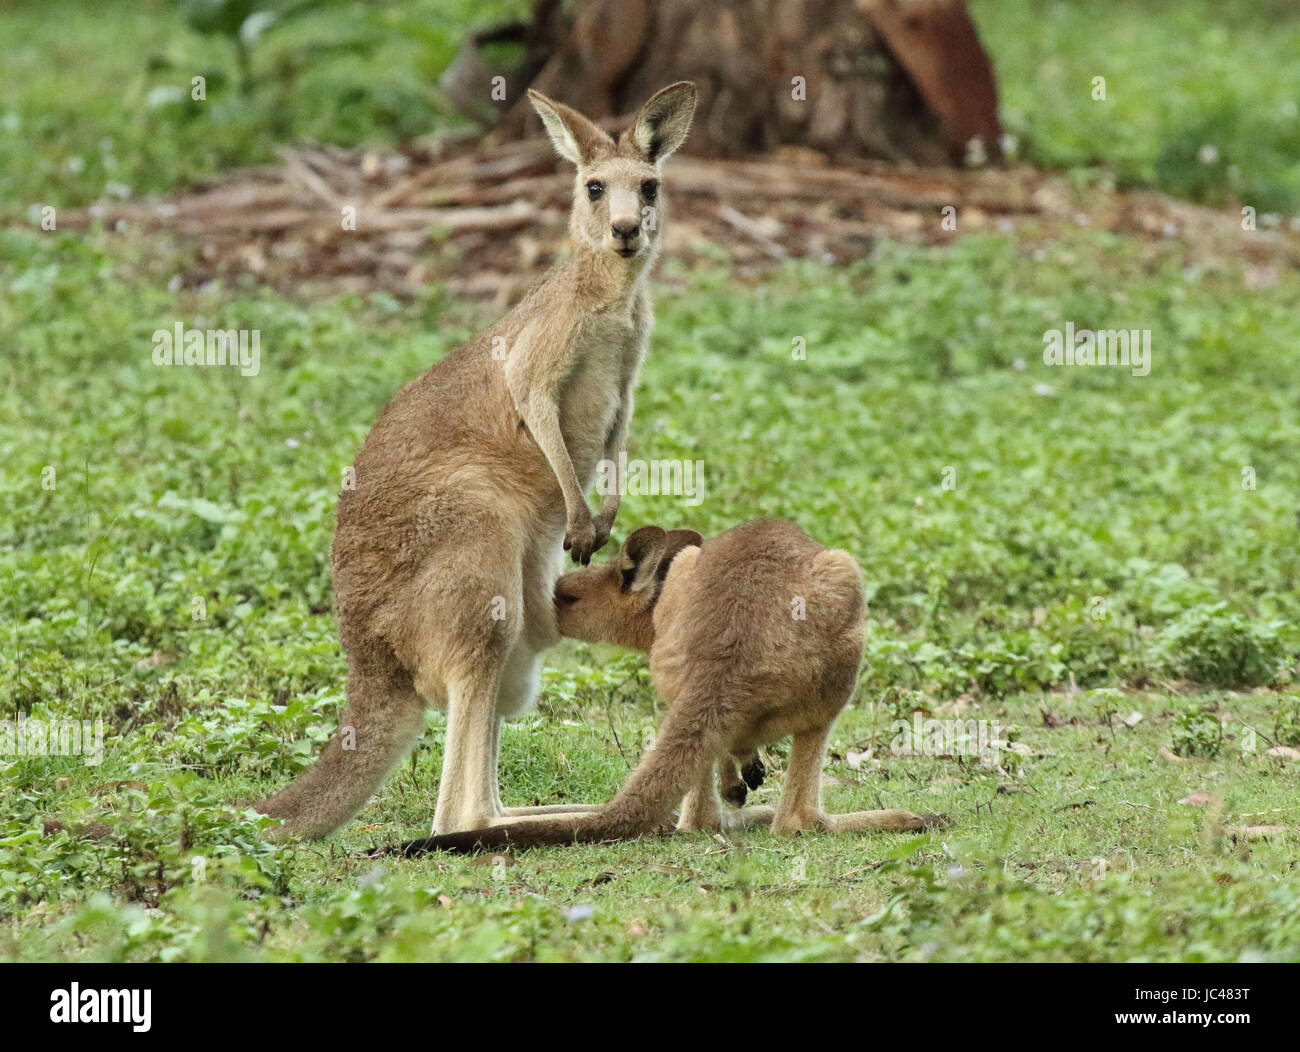 A baby Kangaroo investigating her mother's pouch. - Stock Image